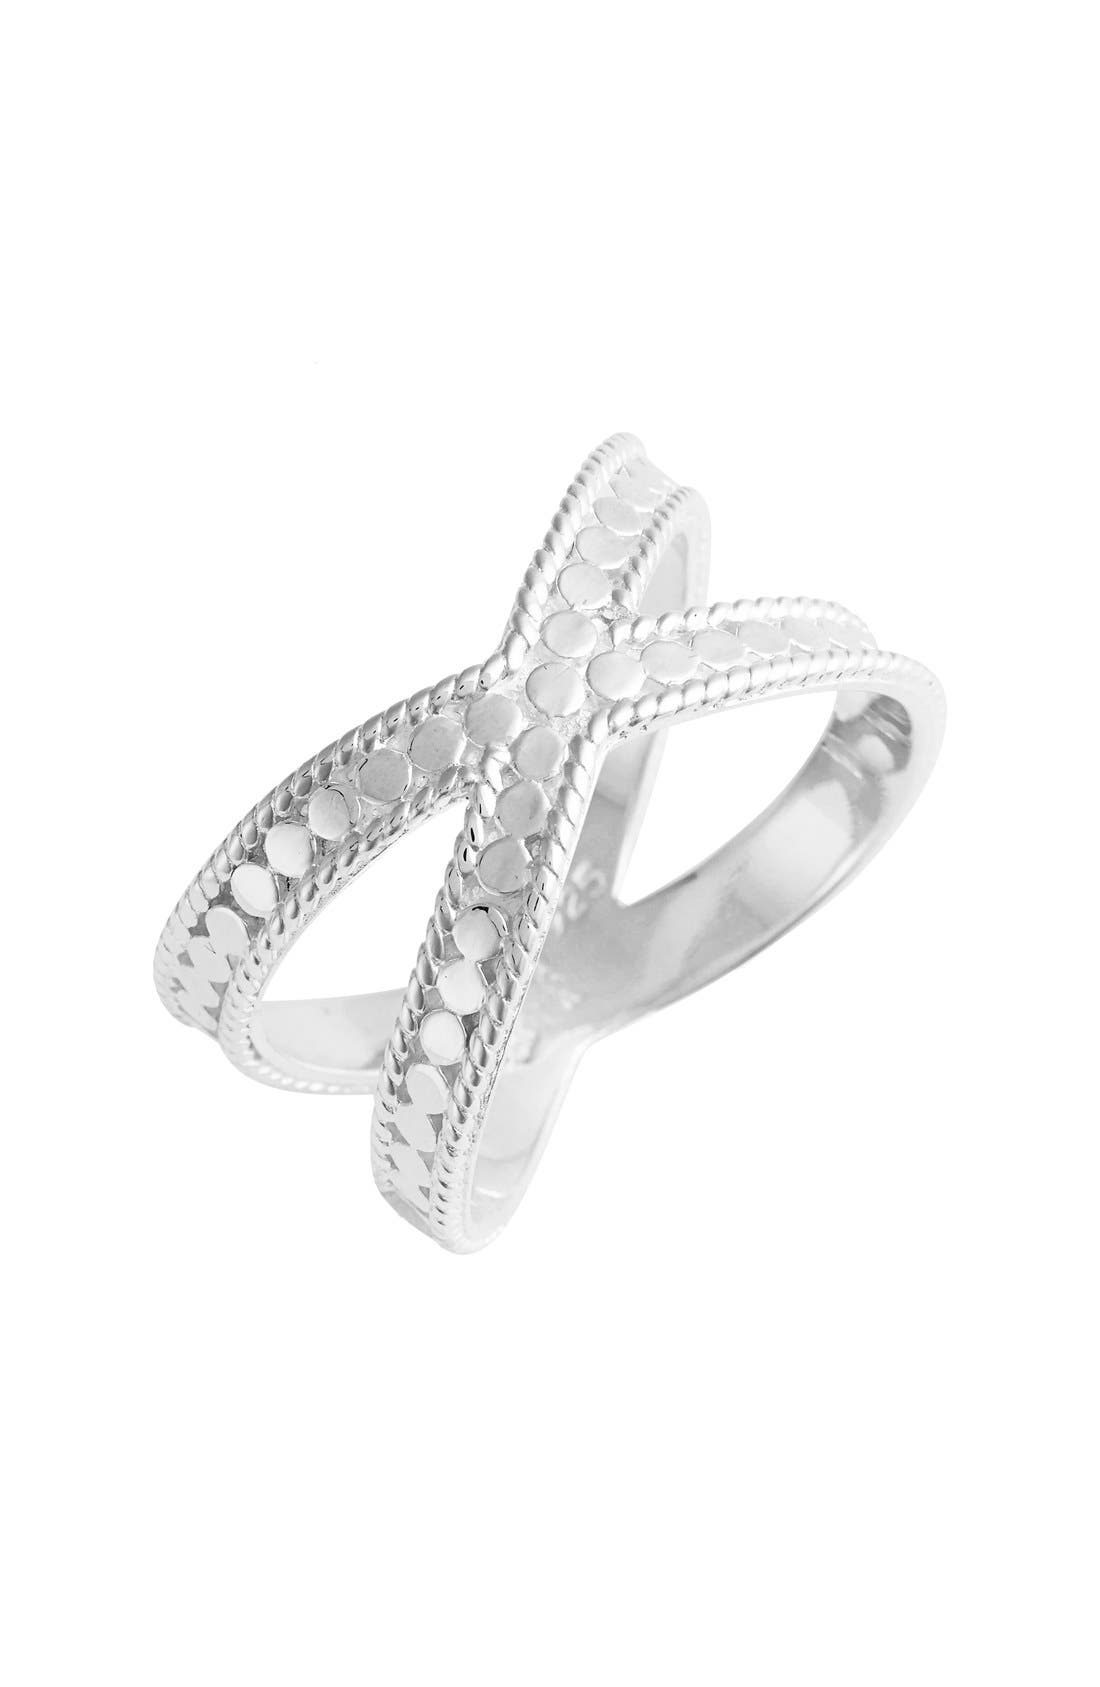 'GILI' CROSSOVER RING